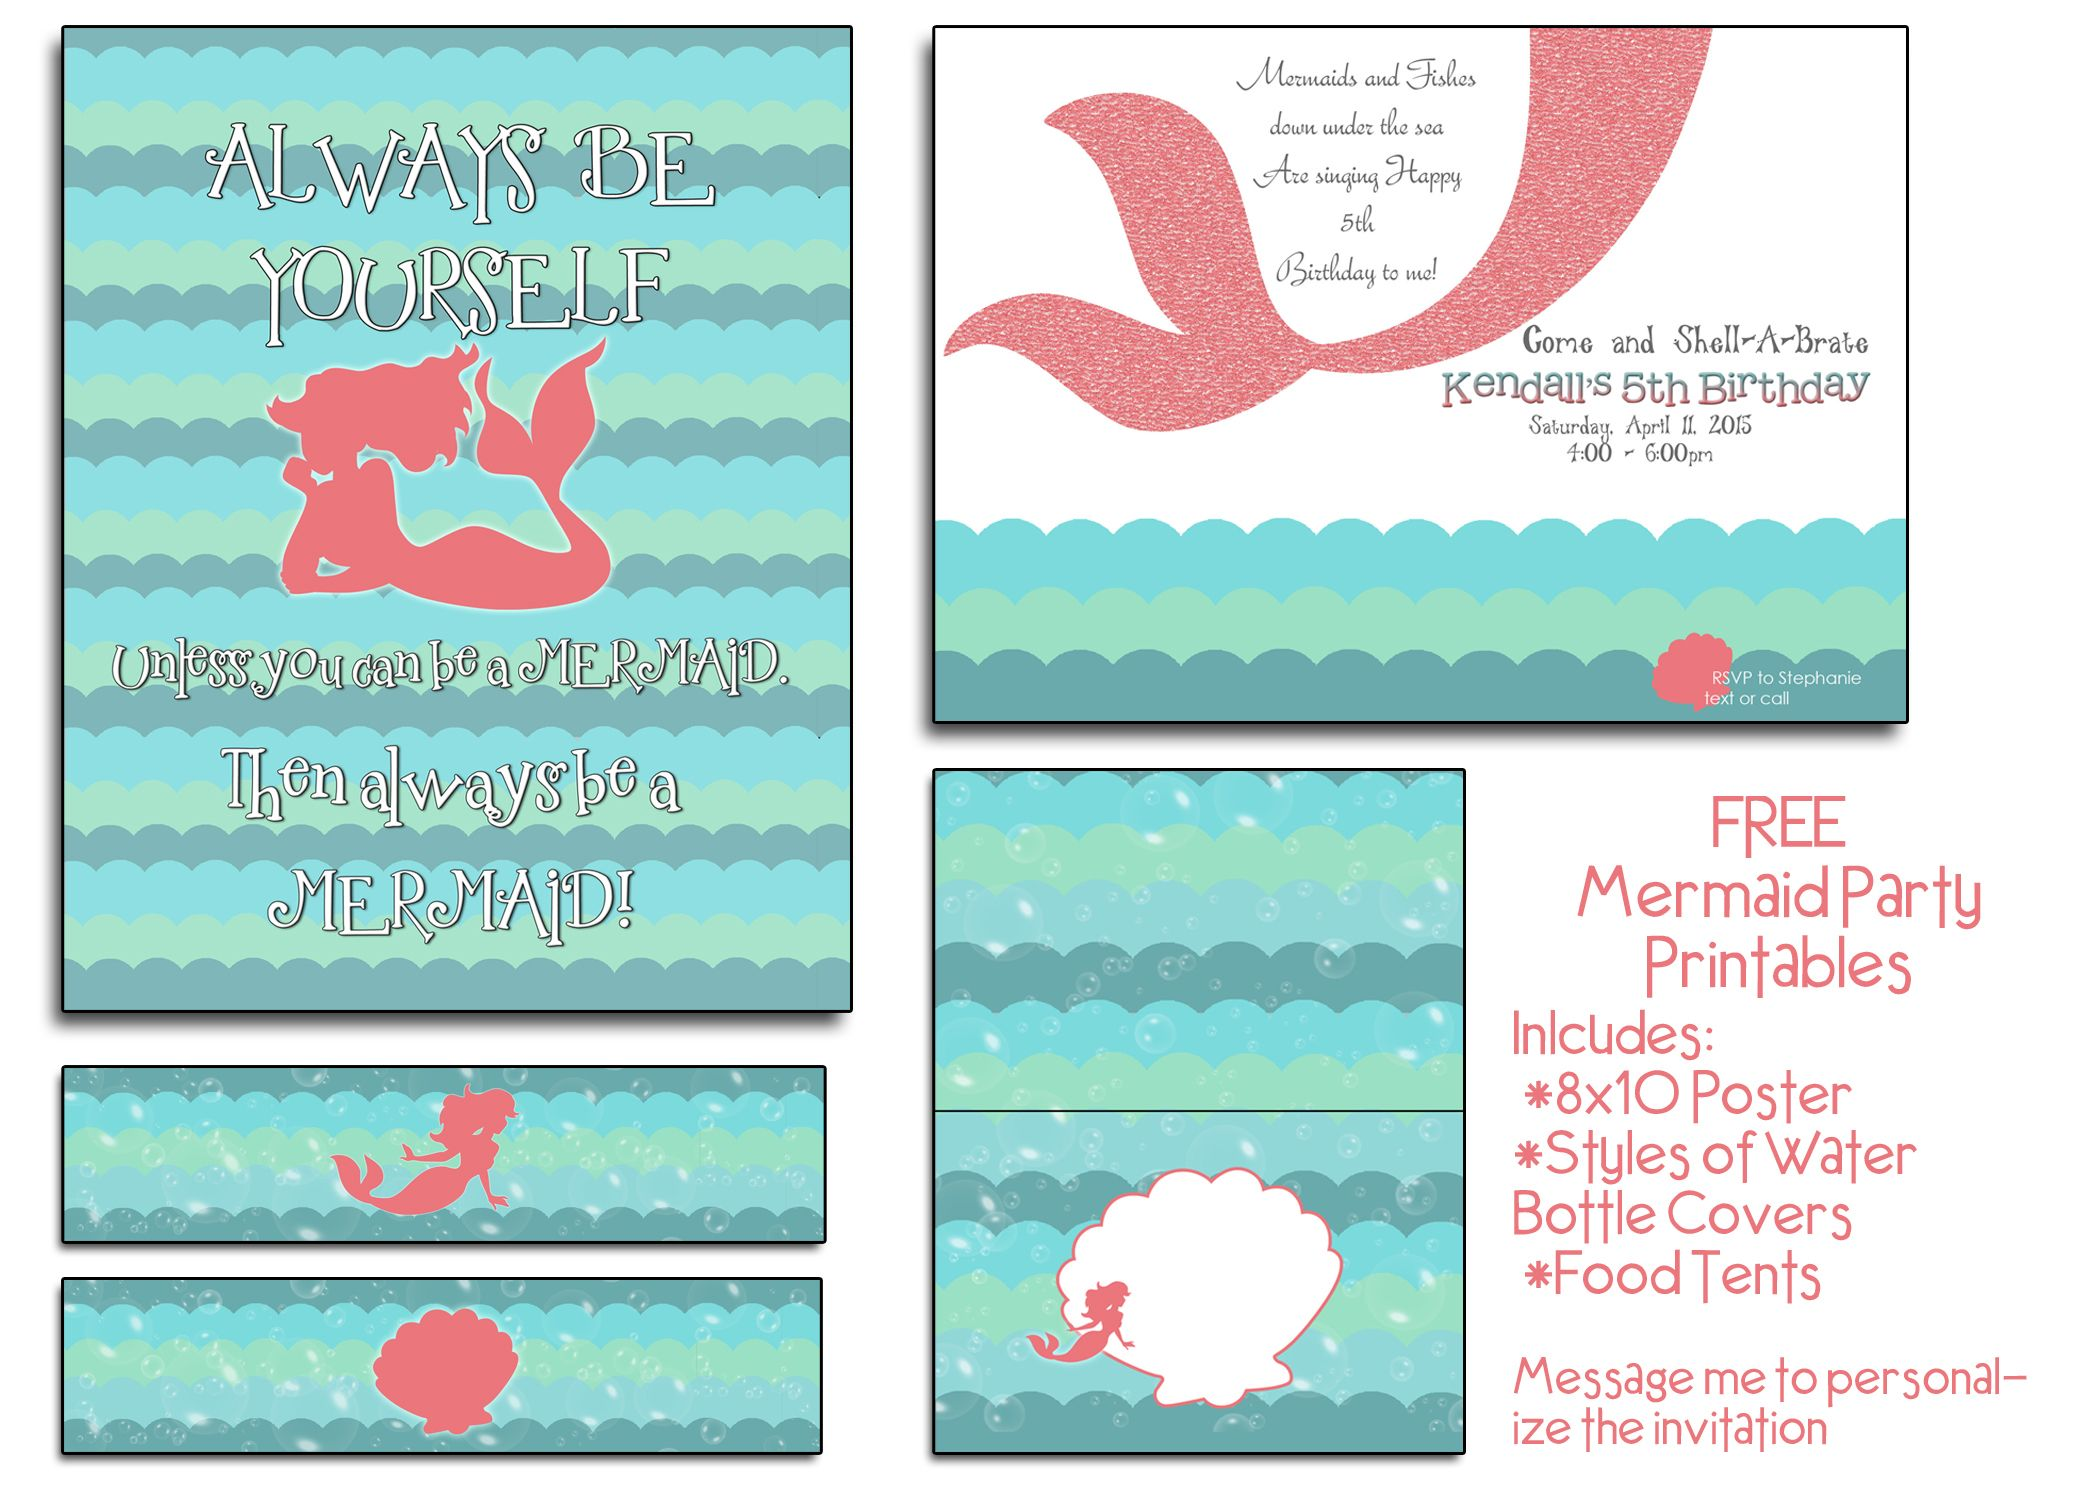 Free Mermaid Party Printables